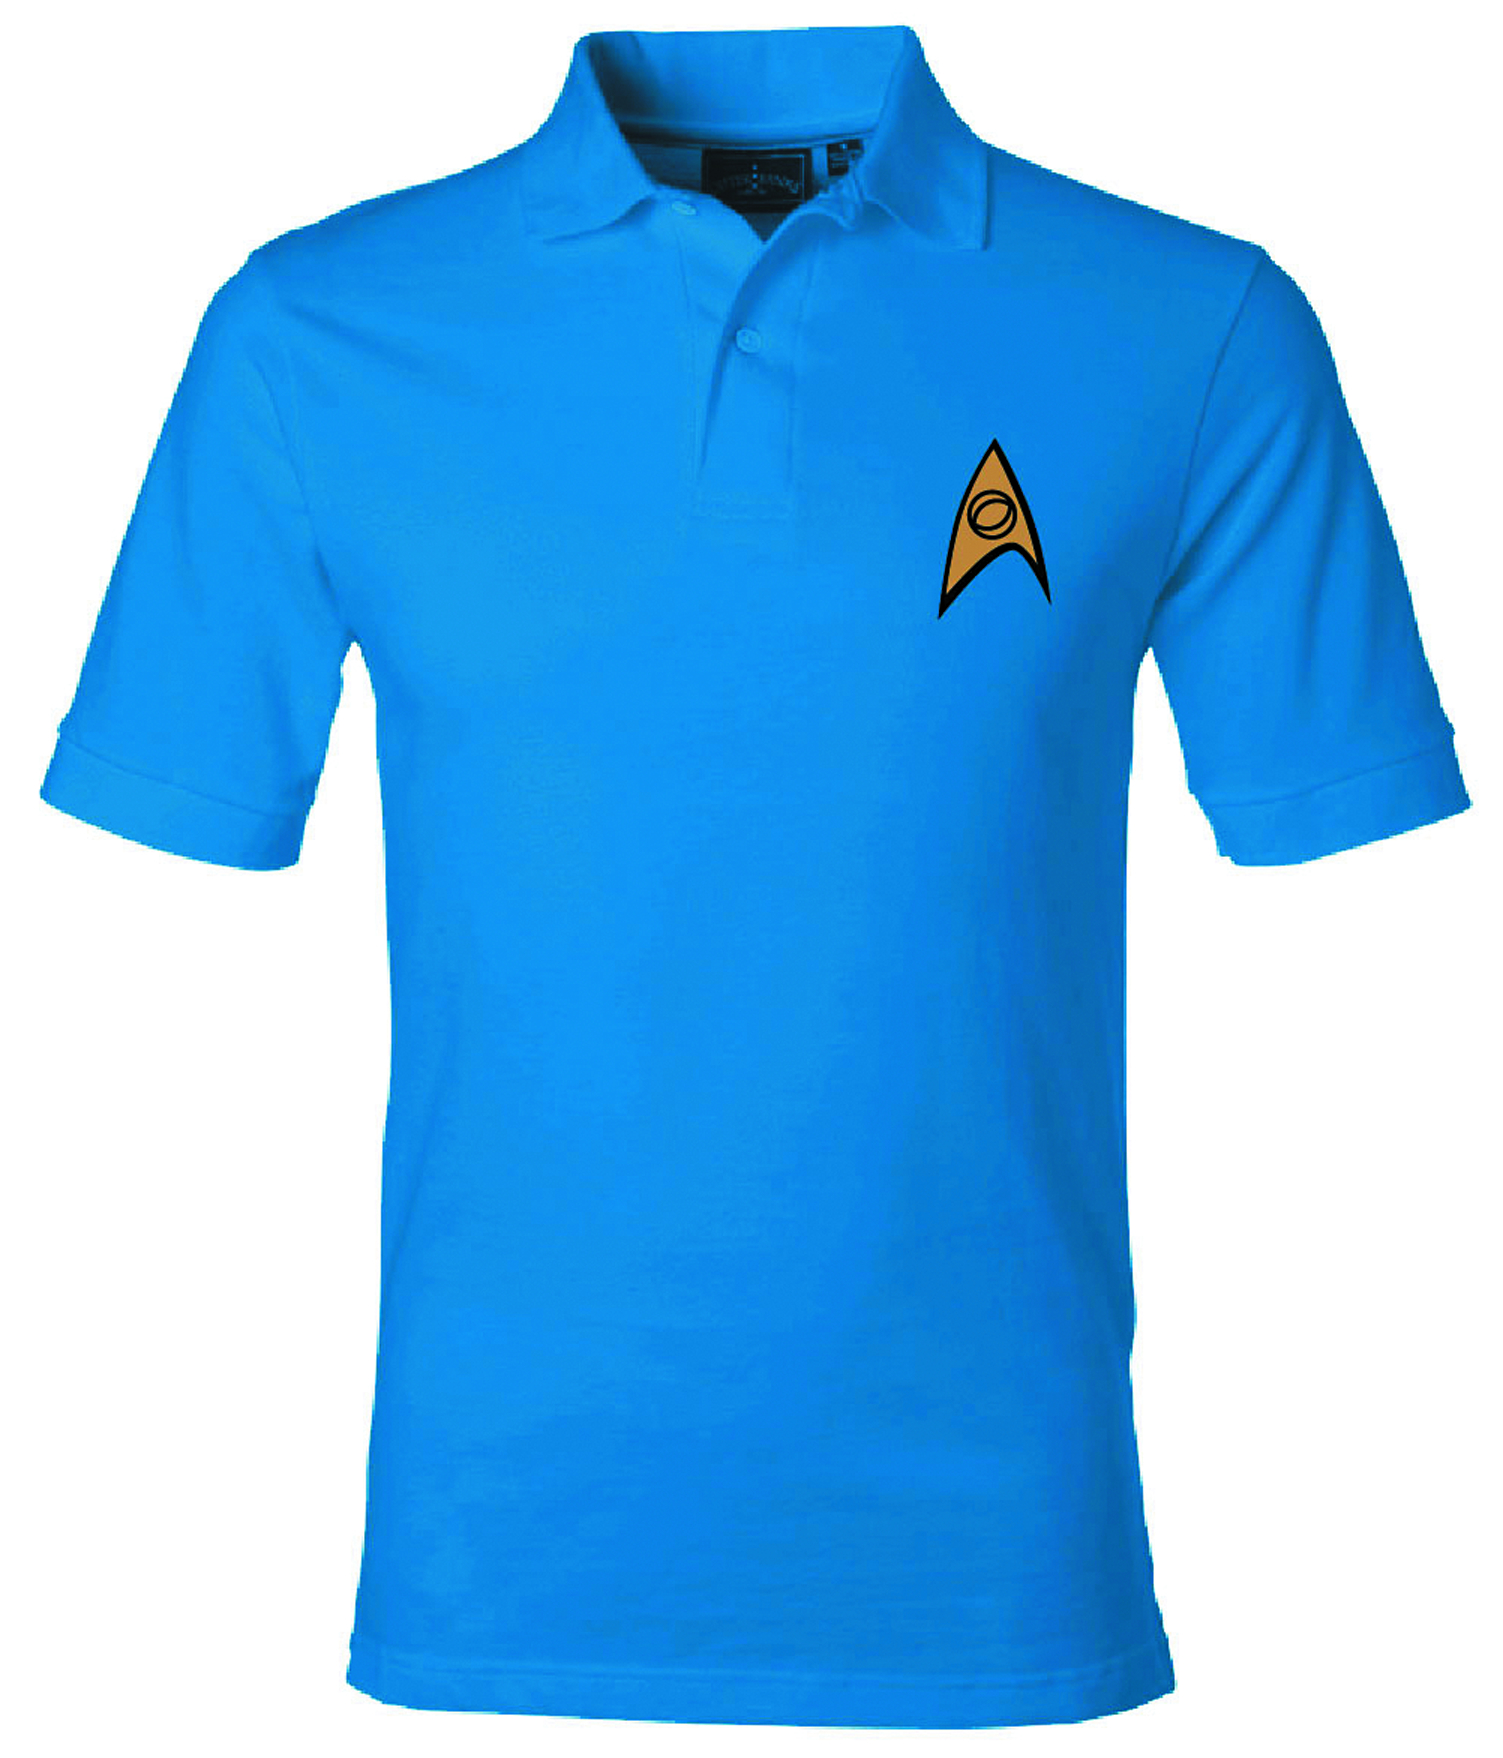 ST STARFLEET SCIENCE SYMBOL BLUE POLO XL